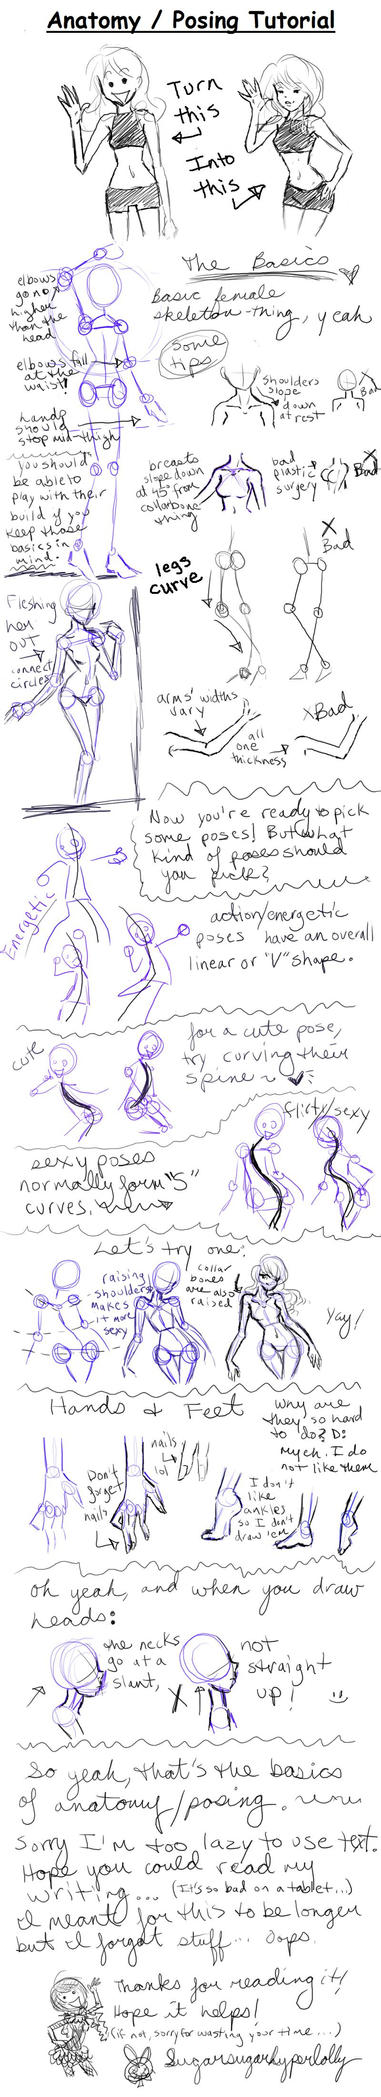 Posing Tutorial by SugarSugarHyperLolly